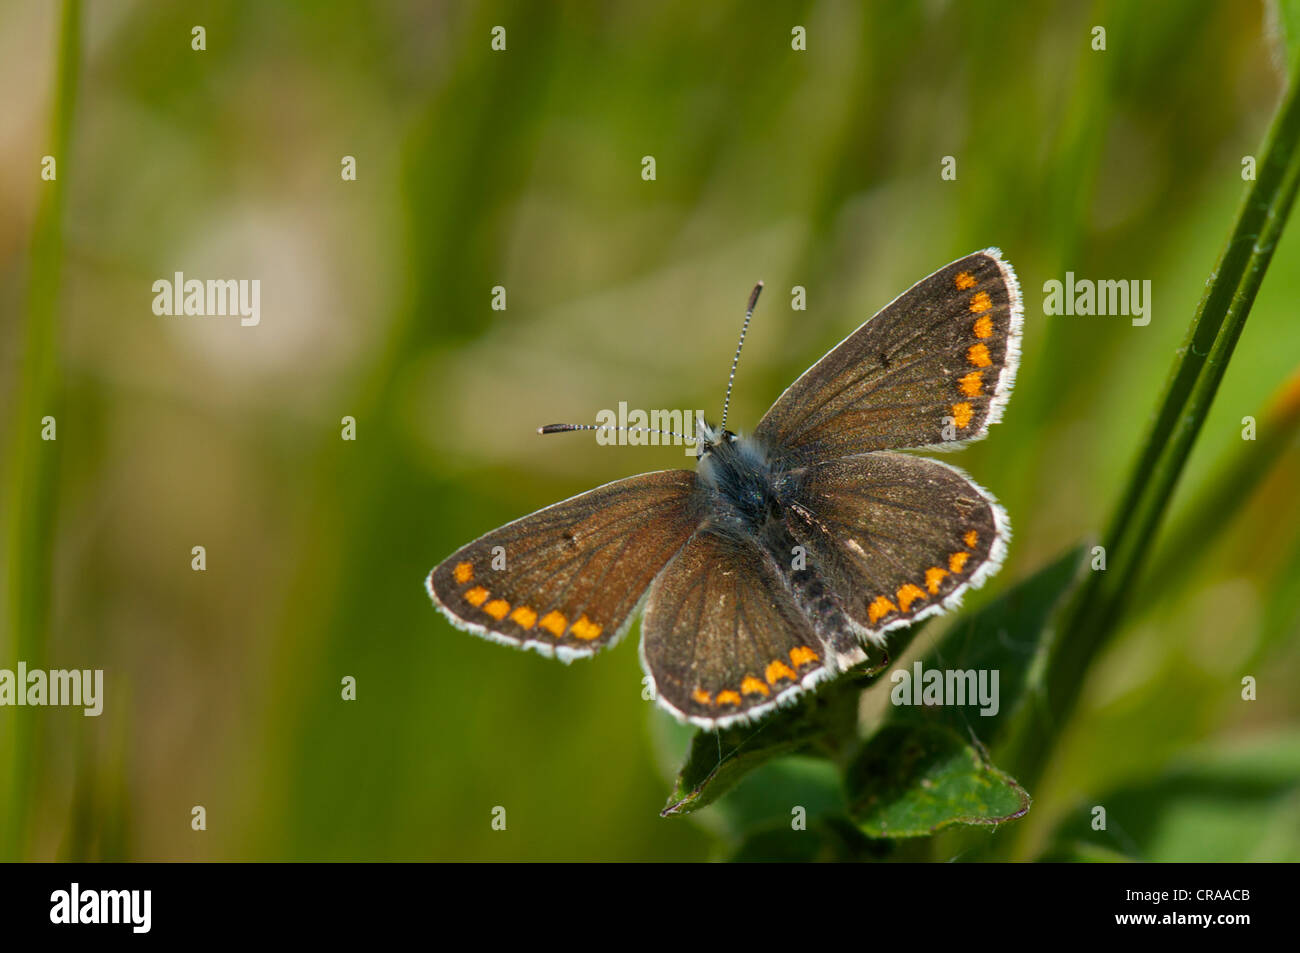 British Brown Argus butterfly basking on grass in typical southern England chalkland grassland environment - Stock Image